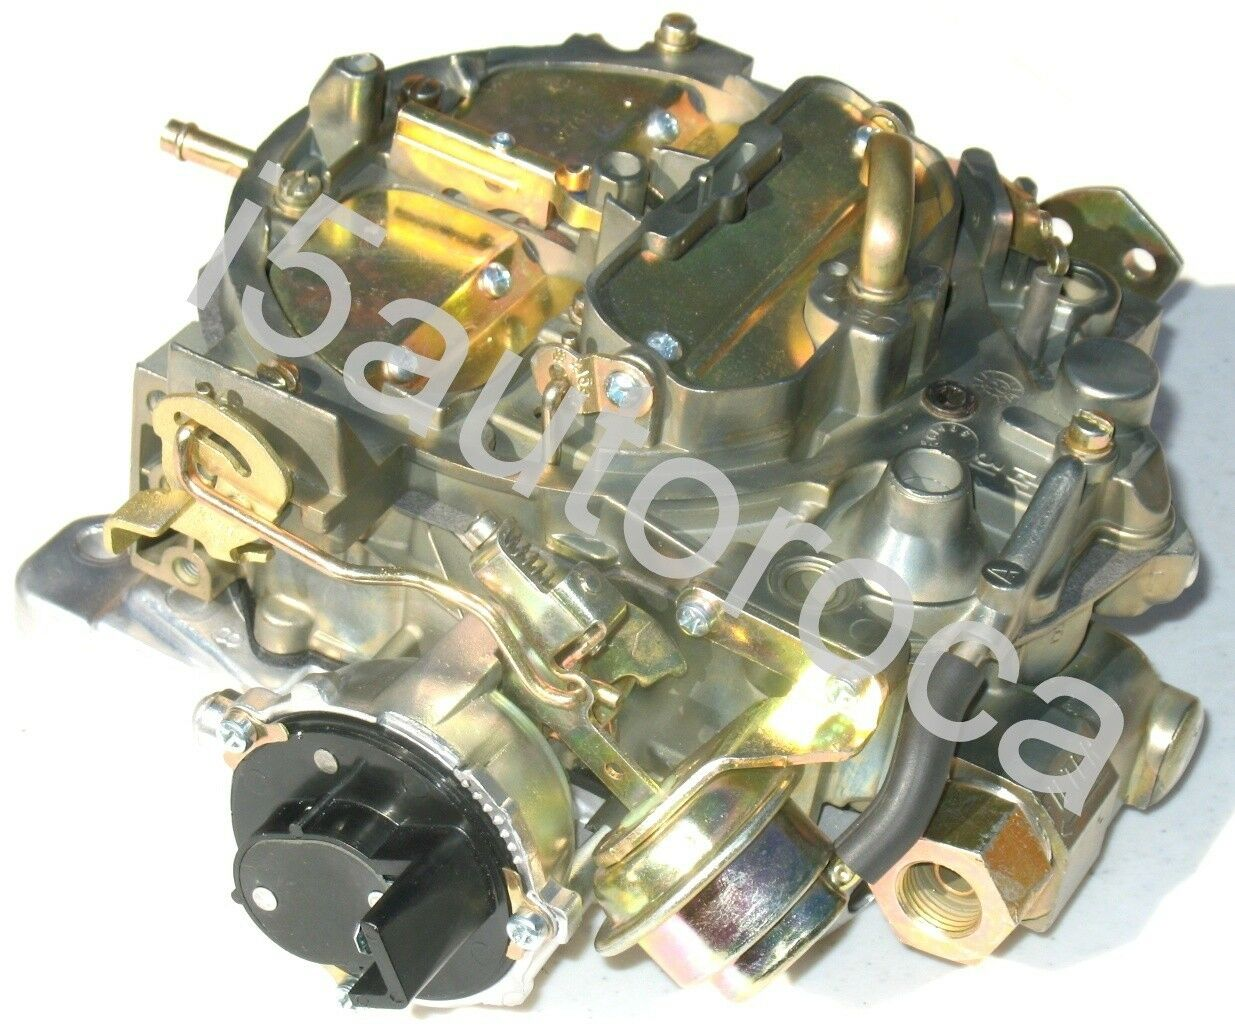 MARINE Carburetor Quadrajet Chrysler 360 Electric Choke